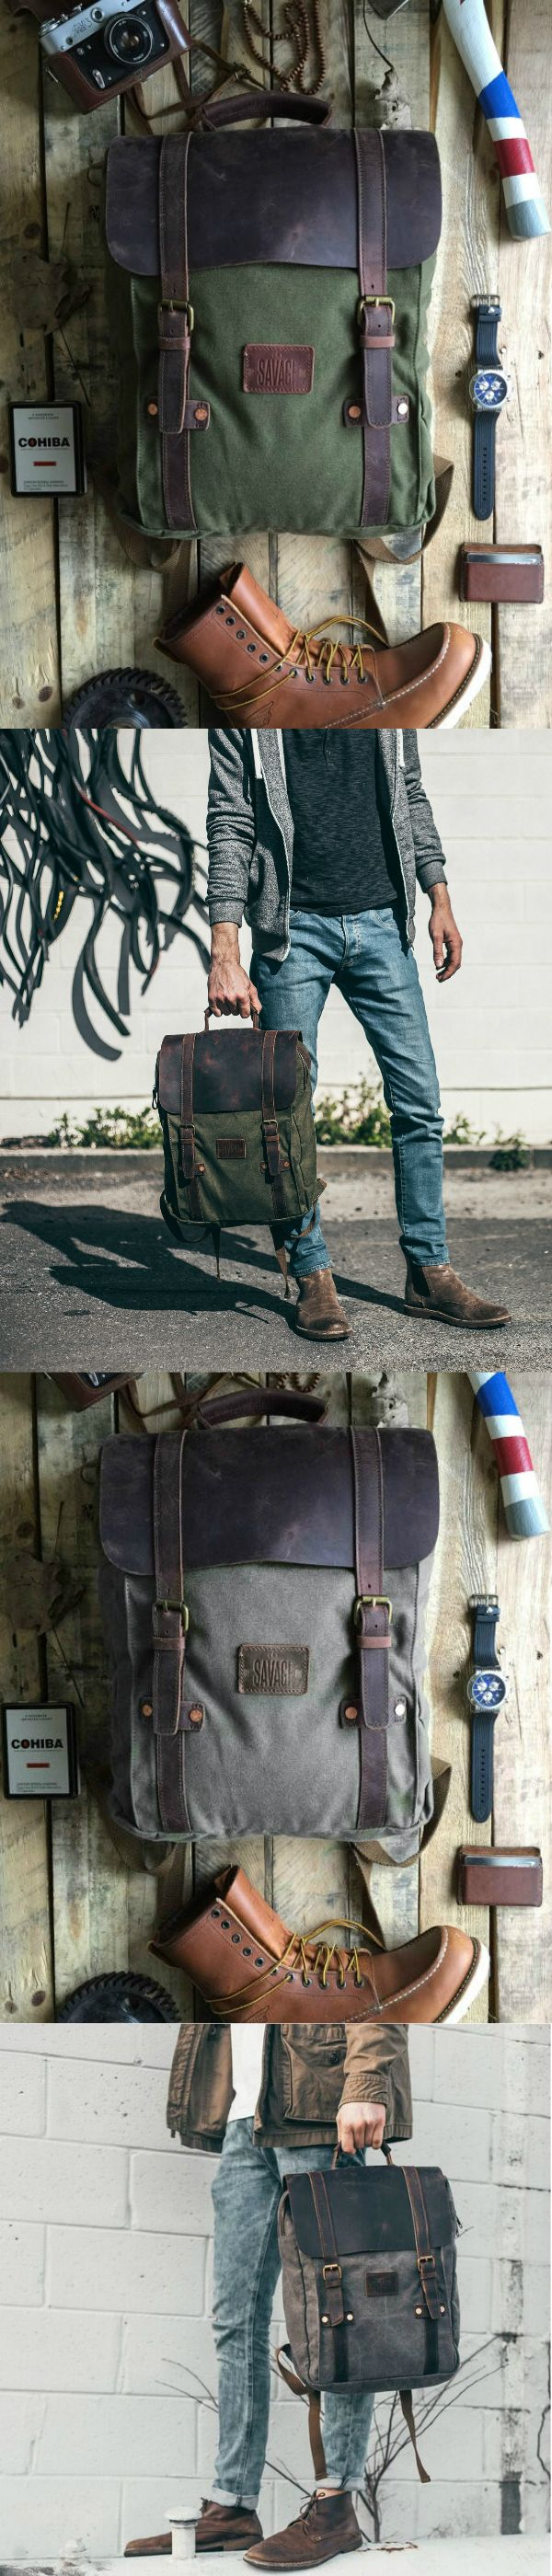 canvas and leather,backpack,waxed,backpack,waxed canvas,duffle bag,canvas rucksack,canvas laptop bag,rucksack,laptop bag,vintage backpack,canvas backpack,leather backpack,waxed canvas bag,	,Bags & Purses, Backpacks, Canvas backpack men, hipster backpack, mens backpack, canvas rucksack, laptop bag, school backpack, navy blue,green,grey,black,beige,tan,outdoor backpack, travel backpack,Canvas Duffel Bag, Mens Duffle Bag, Waxed Duffel, Leather Duffle, Duffle Bag Men, Men Duffel Bag,	Luggage &